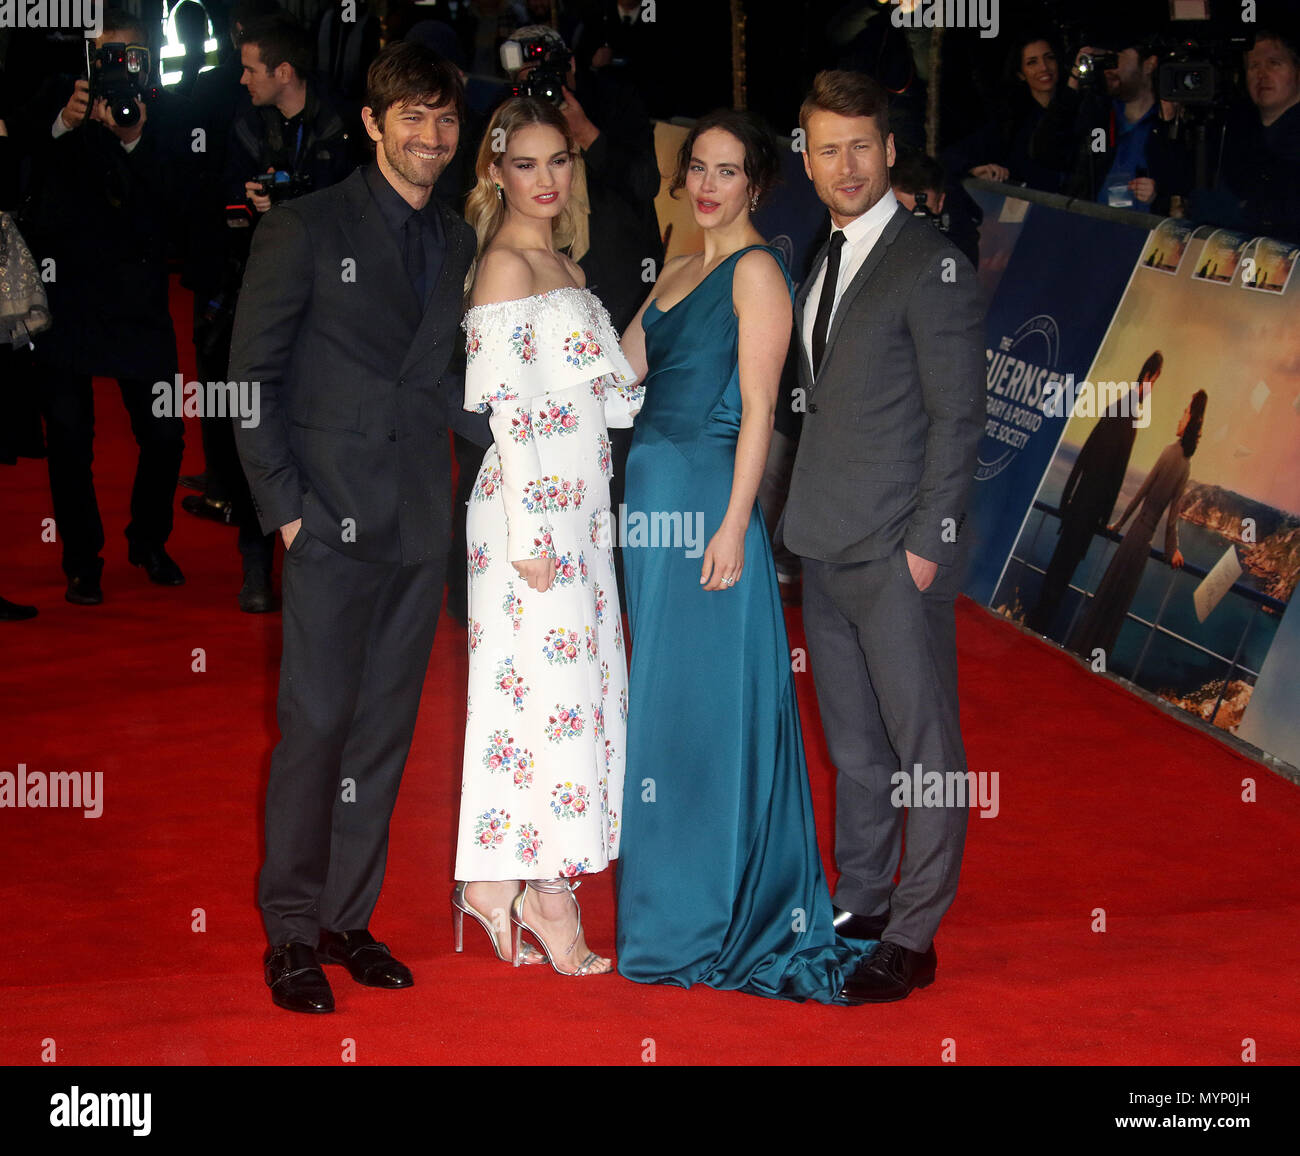 April 9, 2018 - Michiel Huisman, Lily James, Jessica Brown Findlay and Glen Powell attending The Guernsey Literary and Potato Peel Pie Society World P - Stock Image